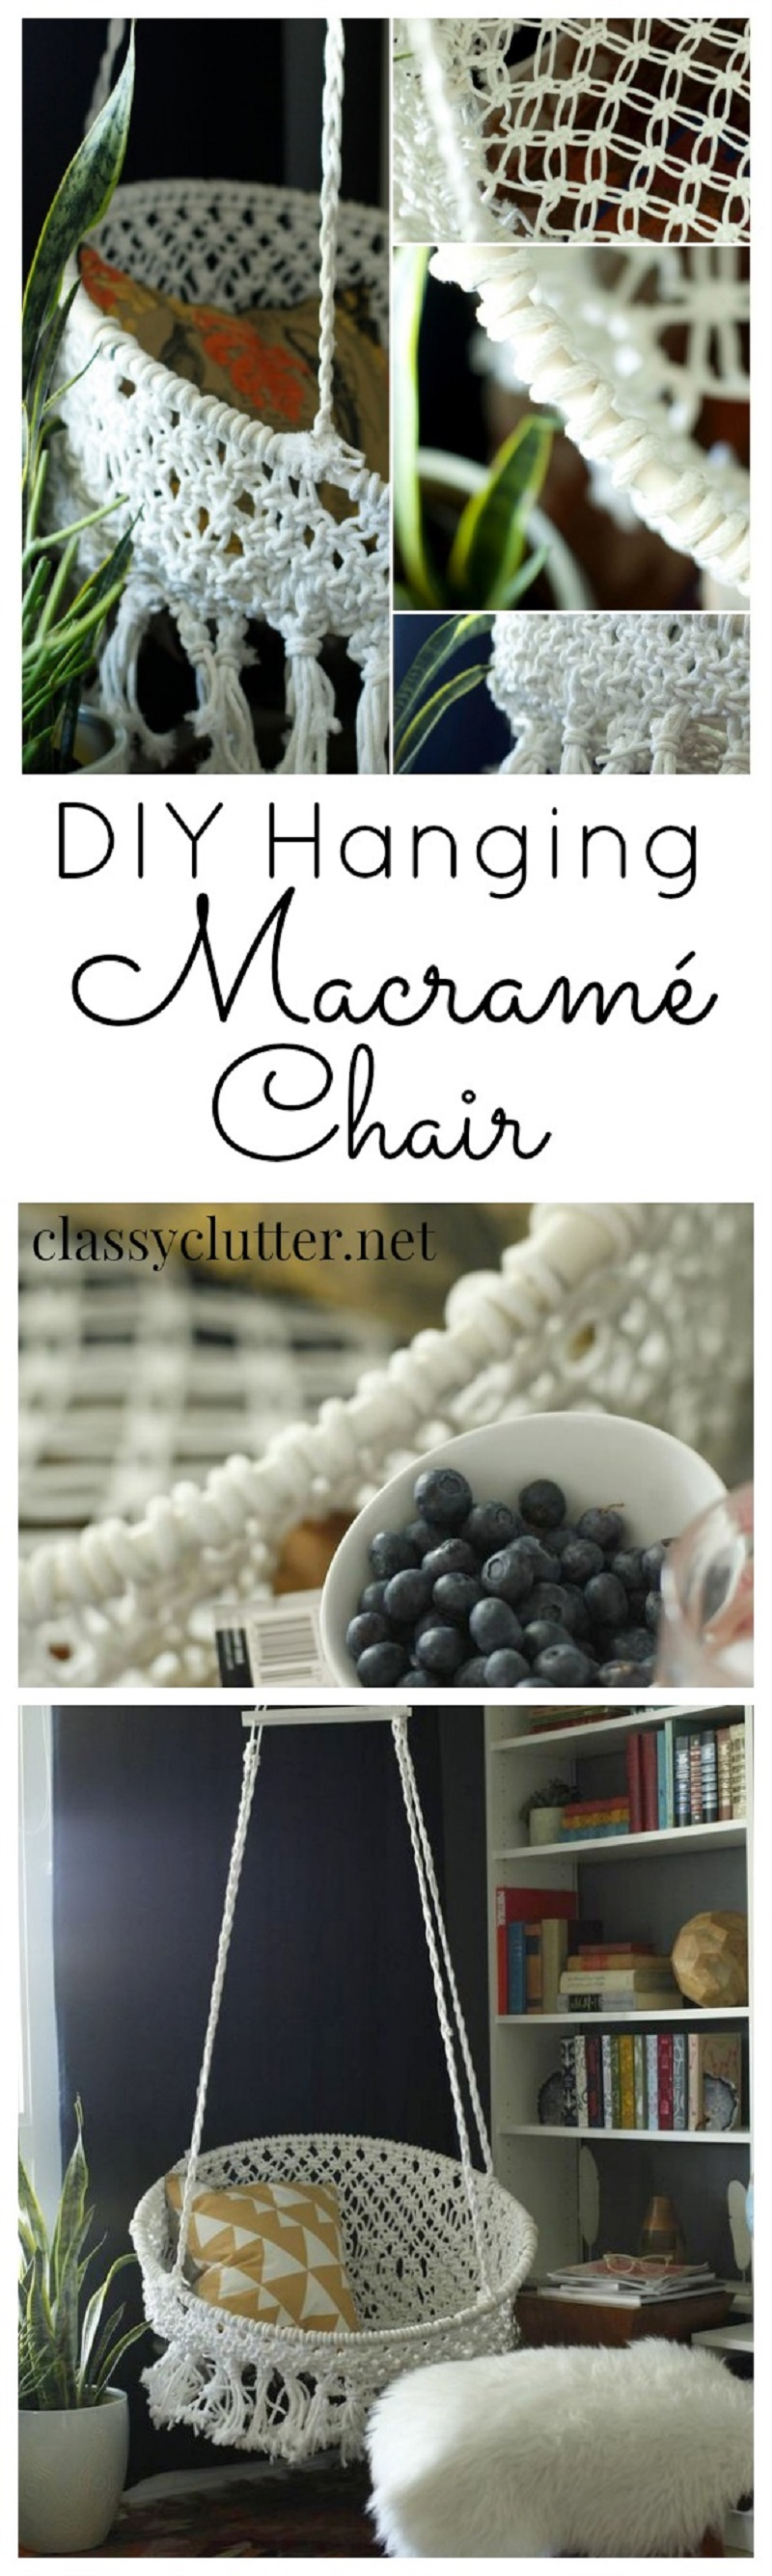 Diy-hanging-macrame-chair